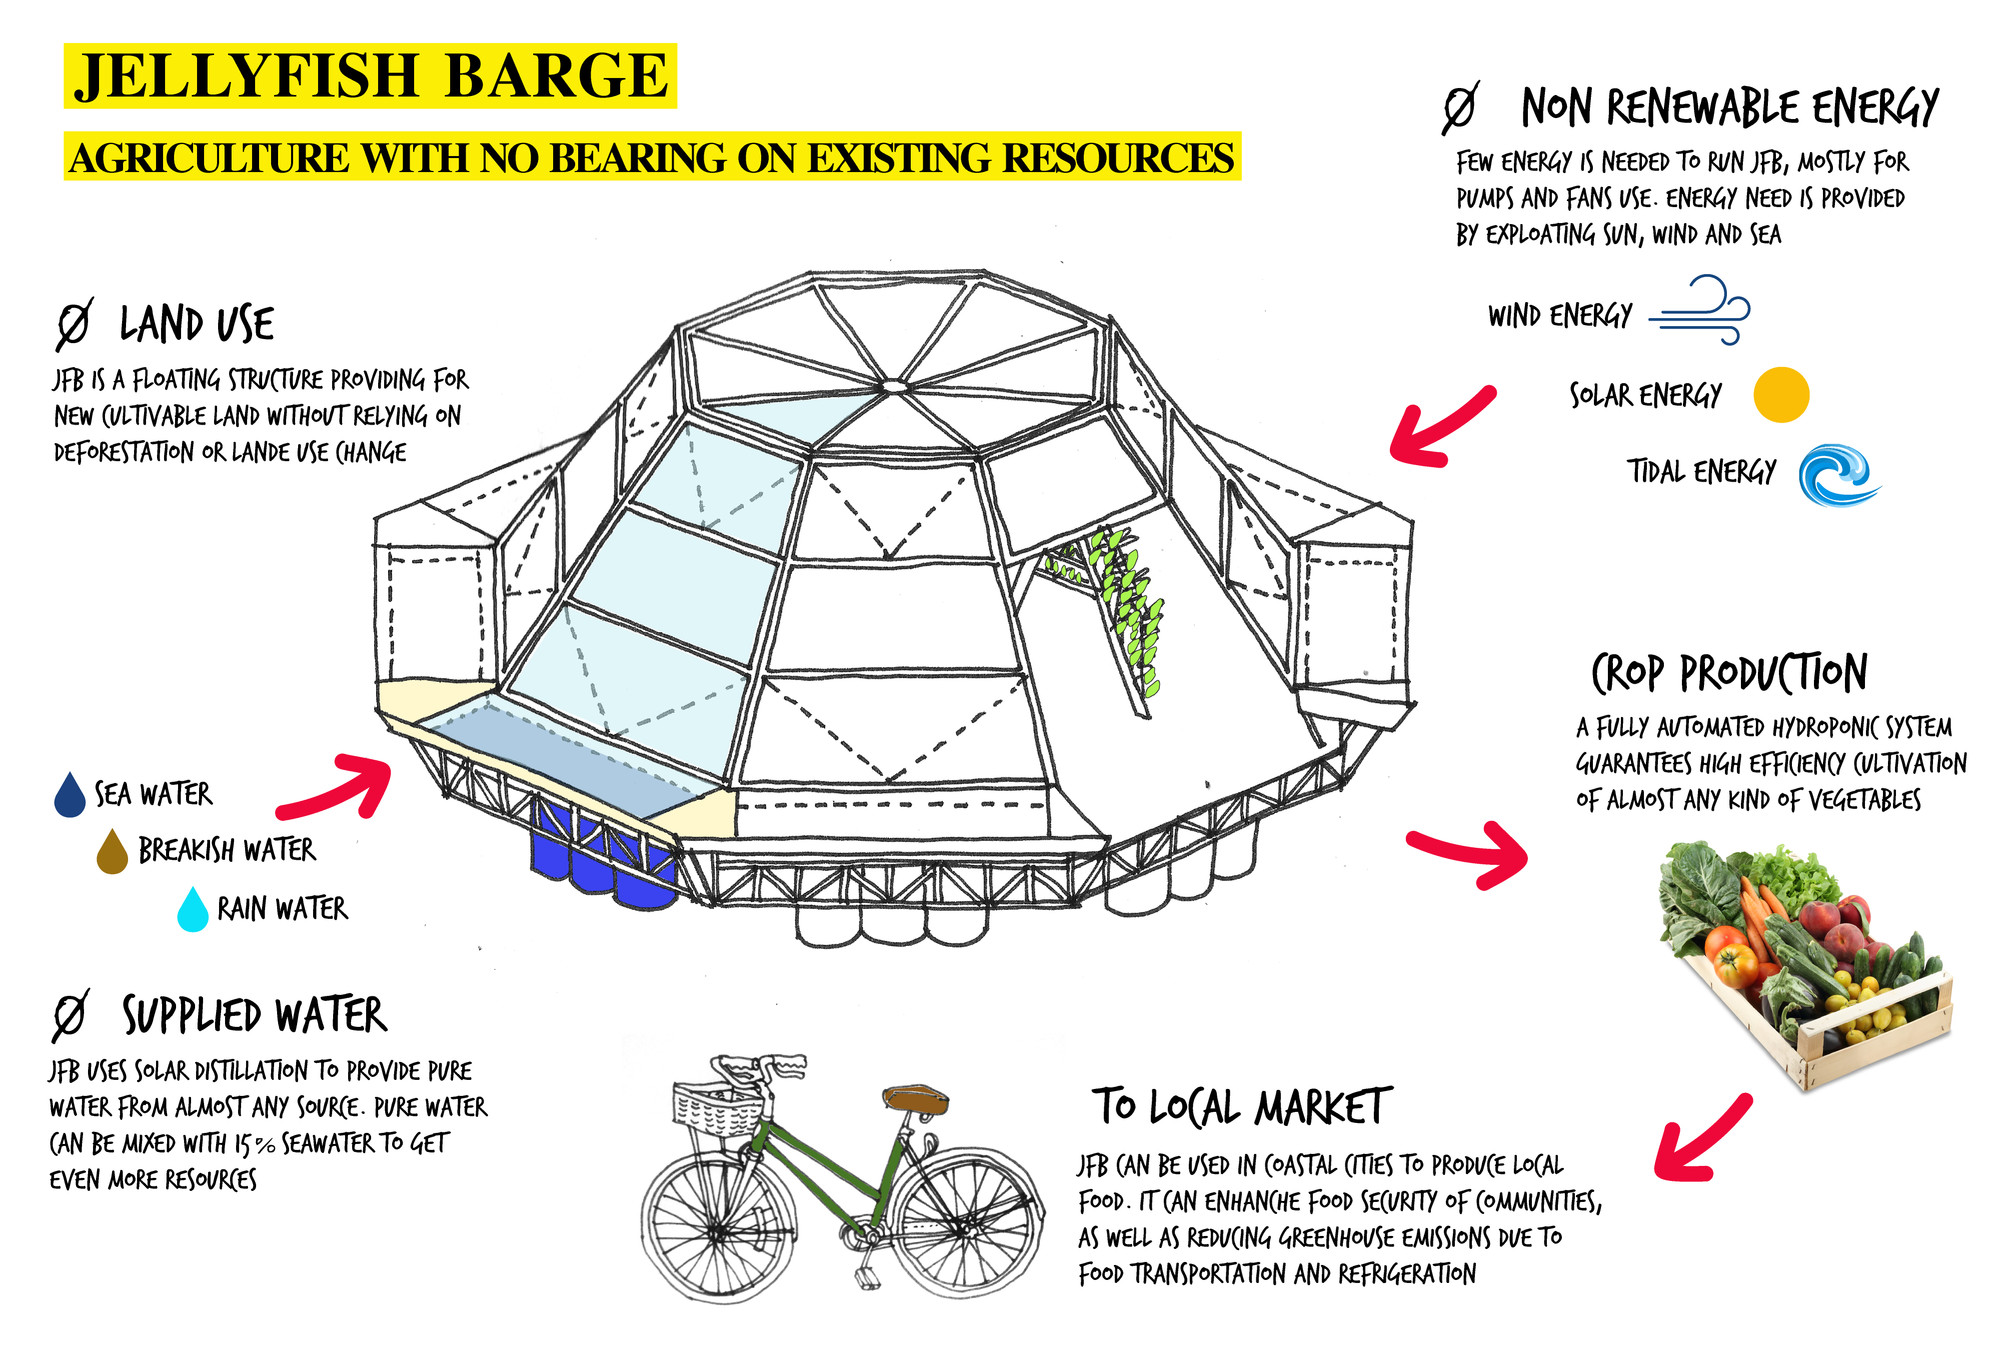 medium resolution of  jellyfish barge provides sustainable source of food and water studiomobile